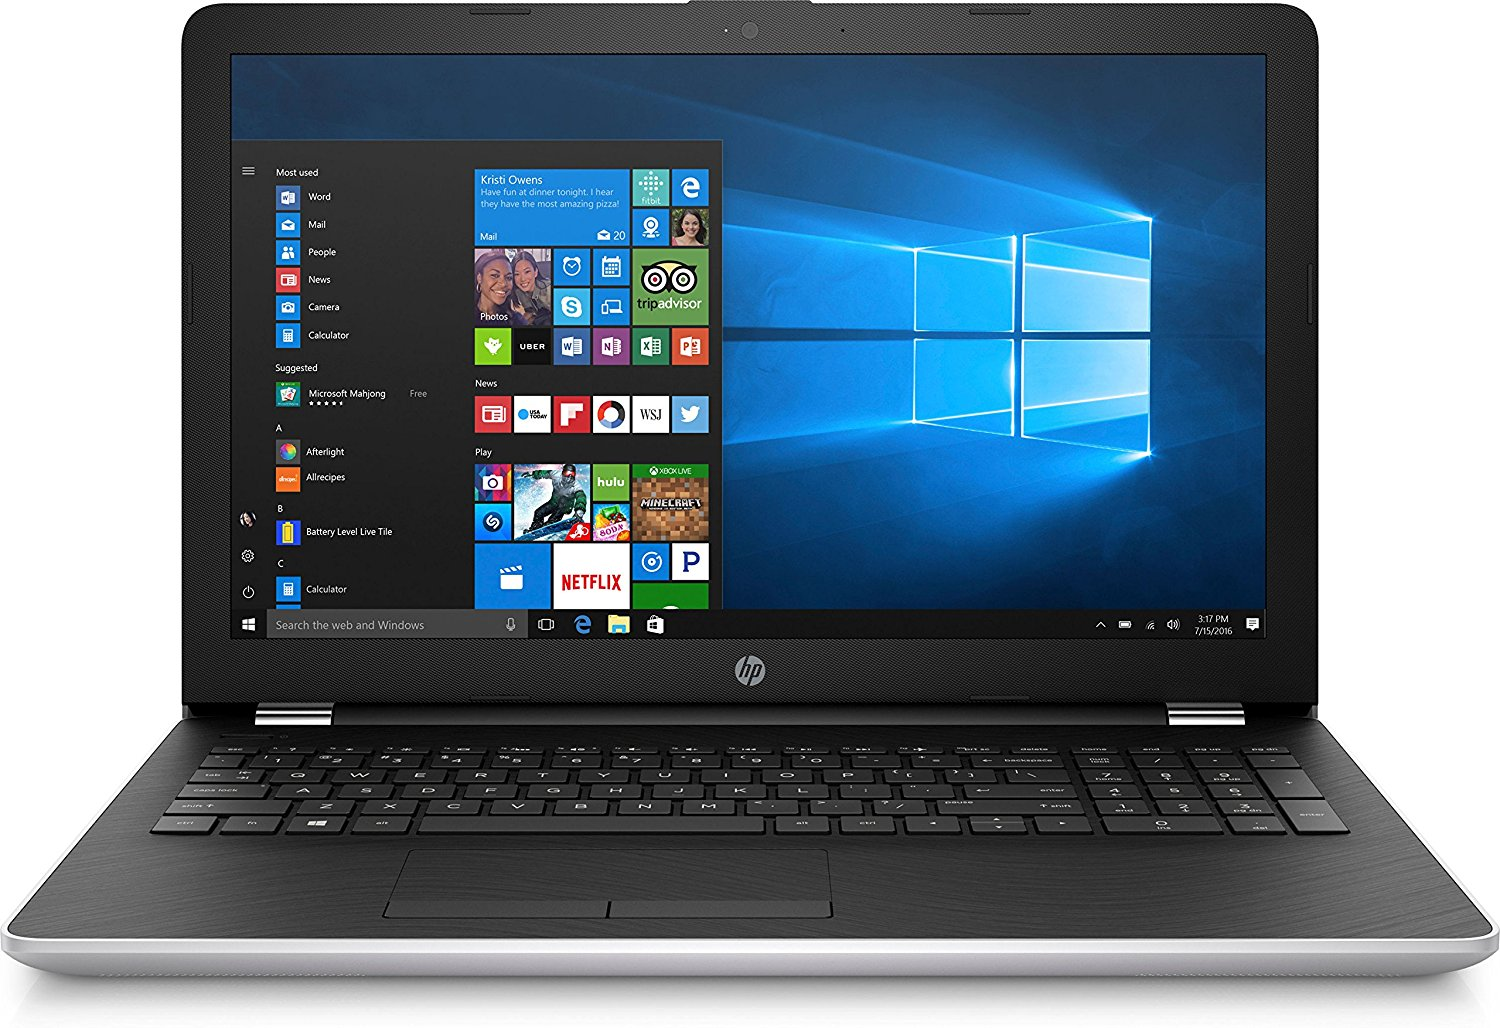 HP 15-bw039nf, PC portable 15 pouces SSD+HDD Stoney Ridge A9 8 Go à 499€